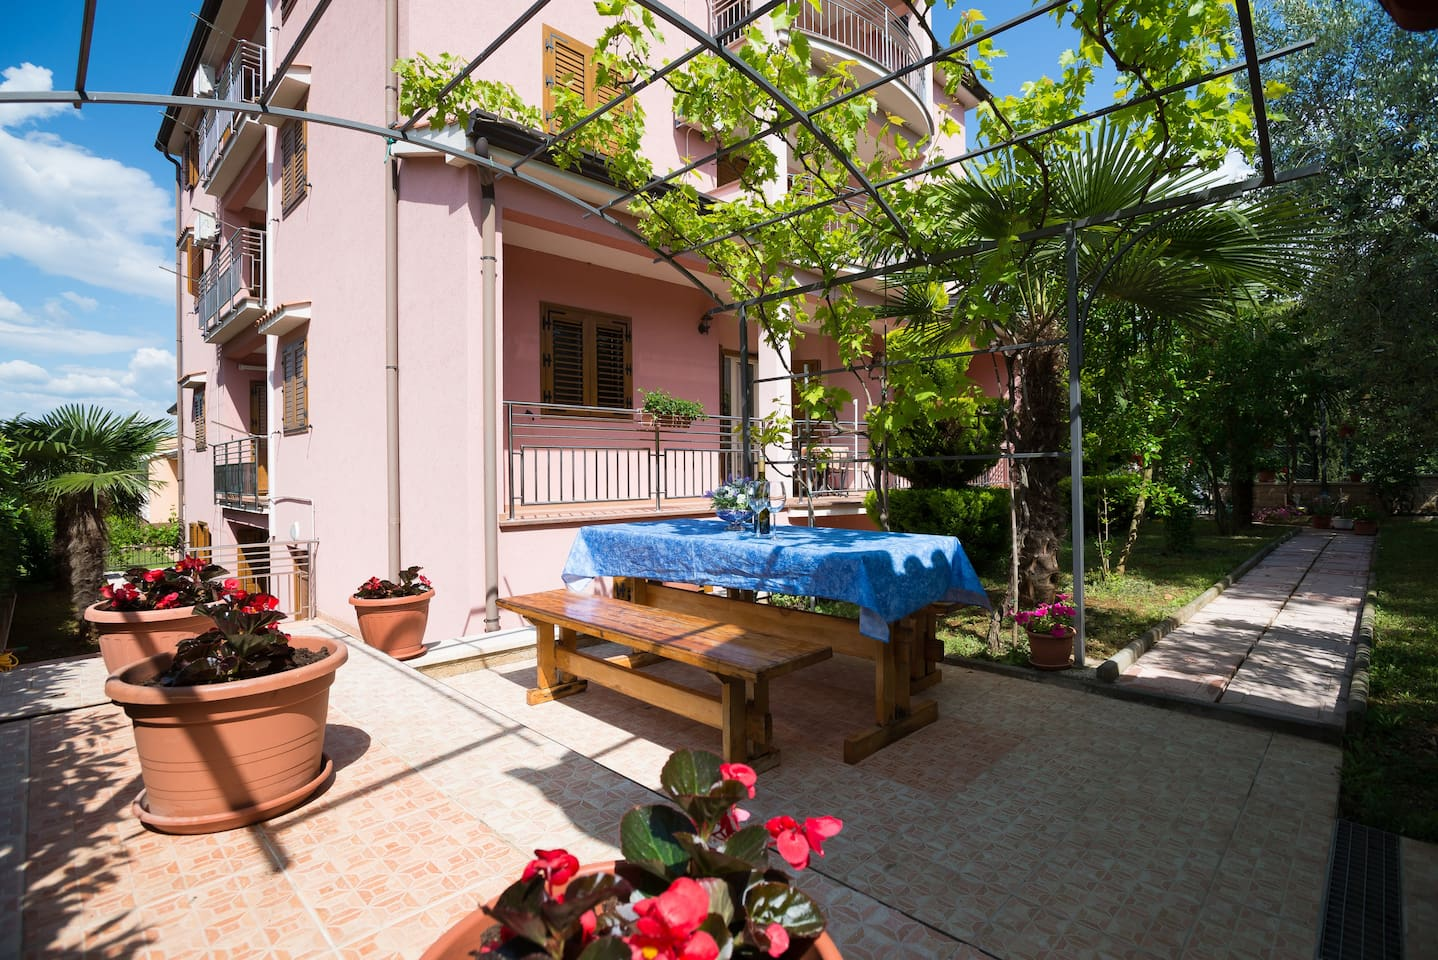 Terrace in the garden with barbecue facilities and garden furniture